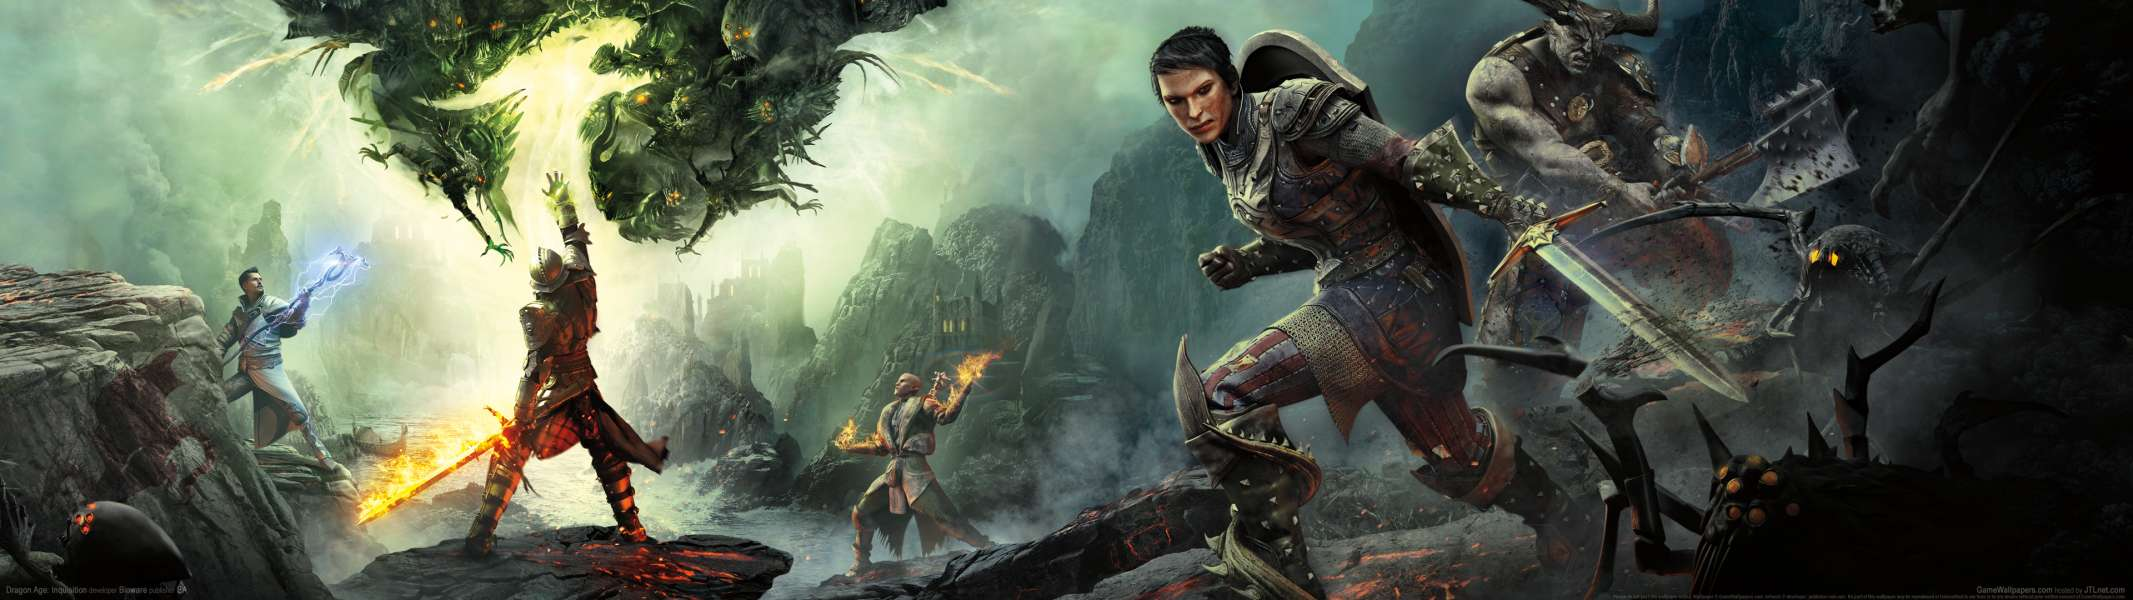 Dragon Age: Inquisition dual screen achtergrond